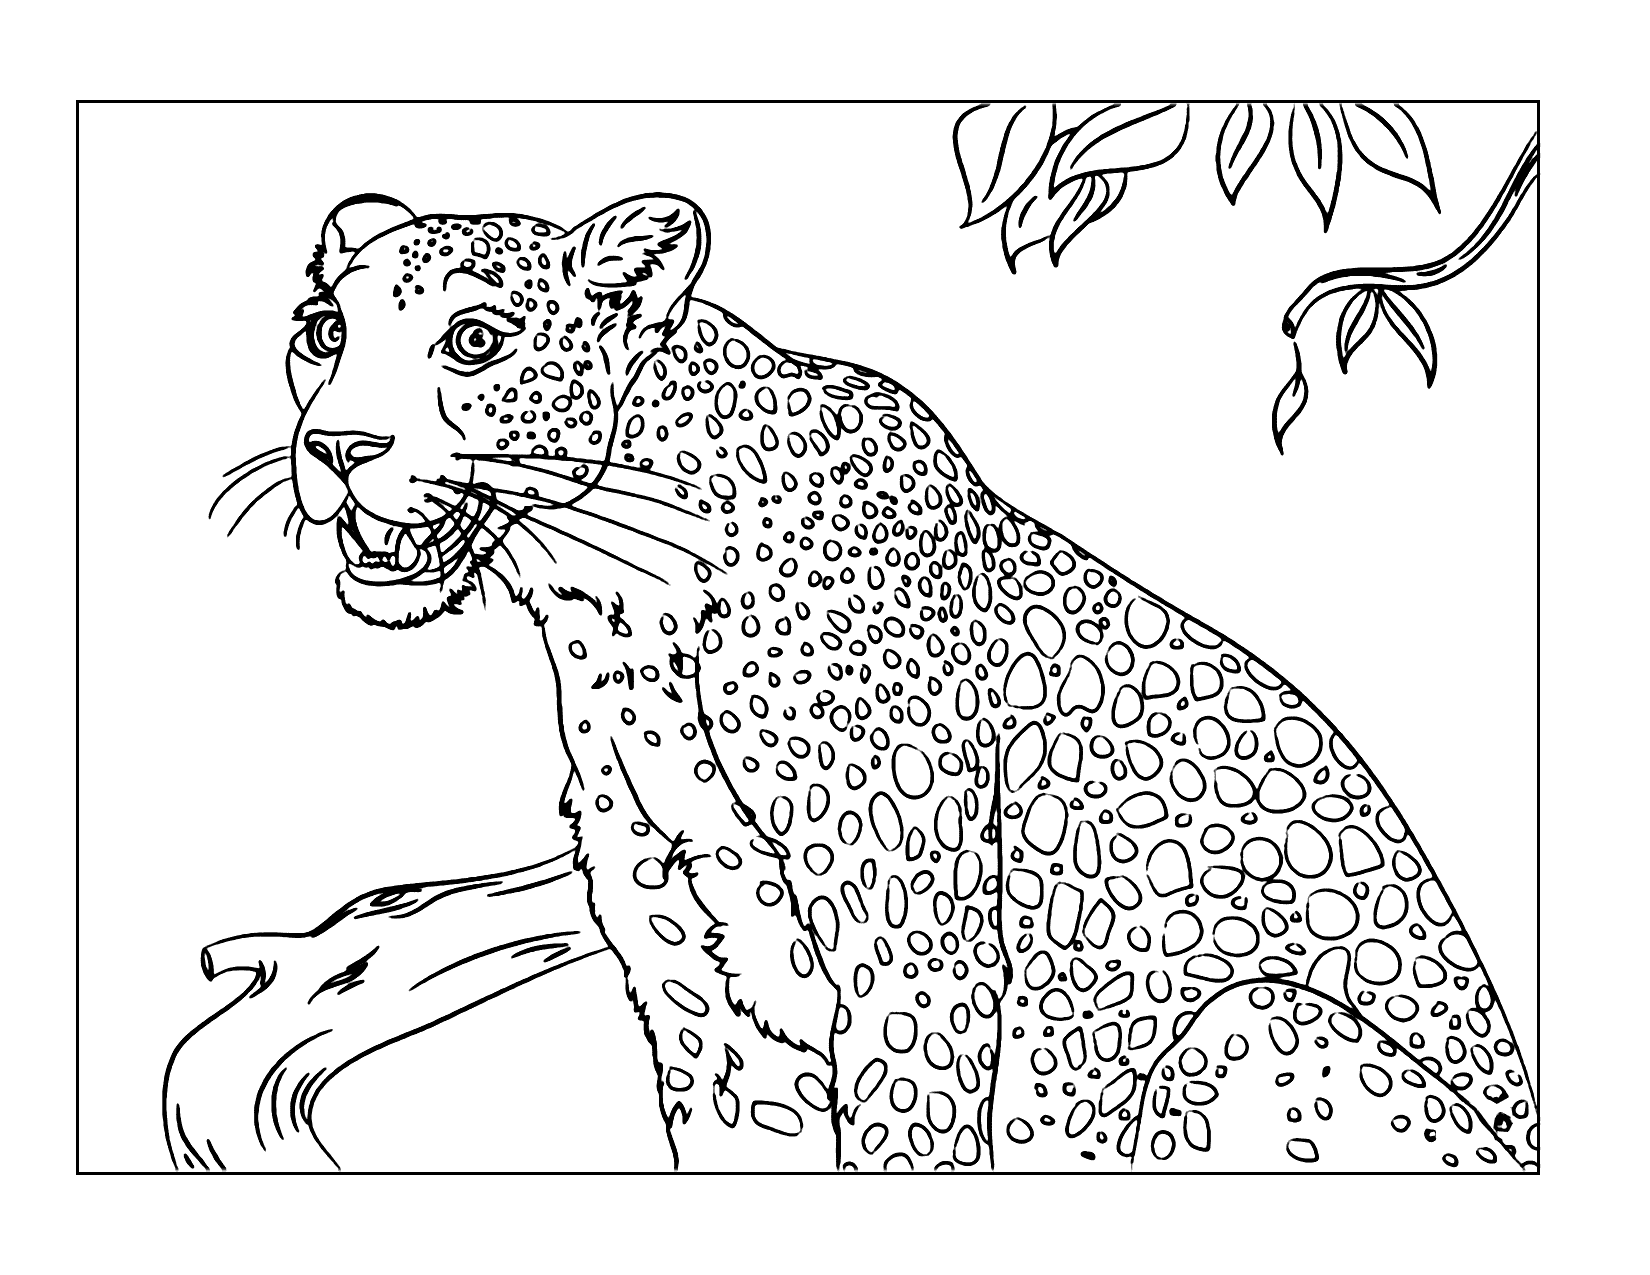 Leopard Coloring Pages - coloring.rocks! in 2020   Cat ...